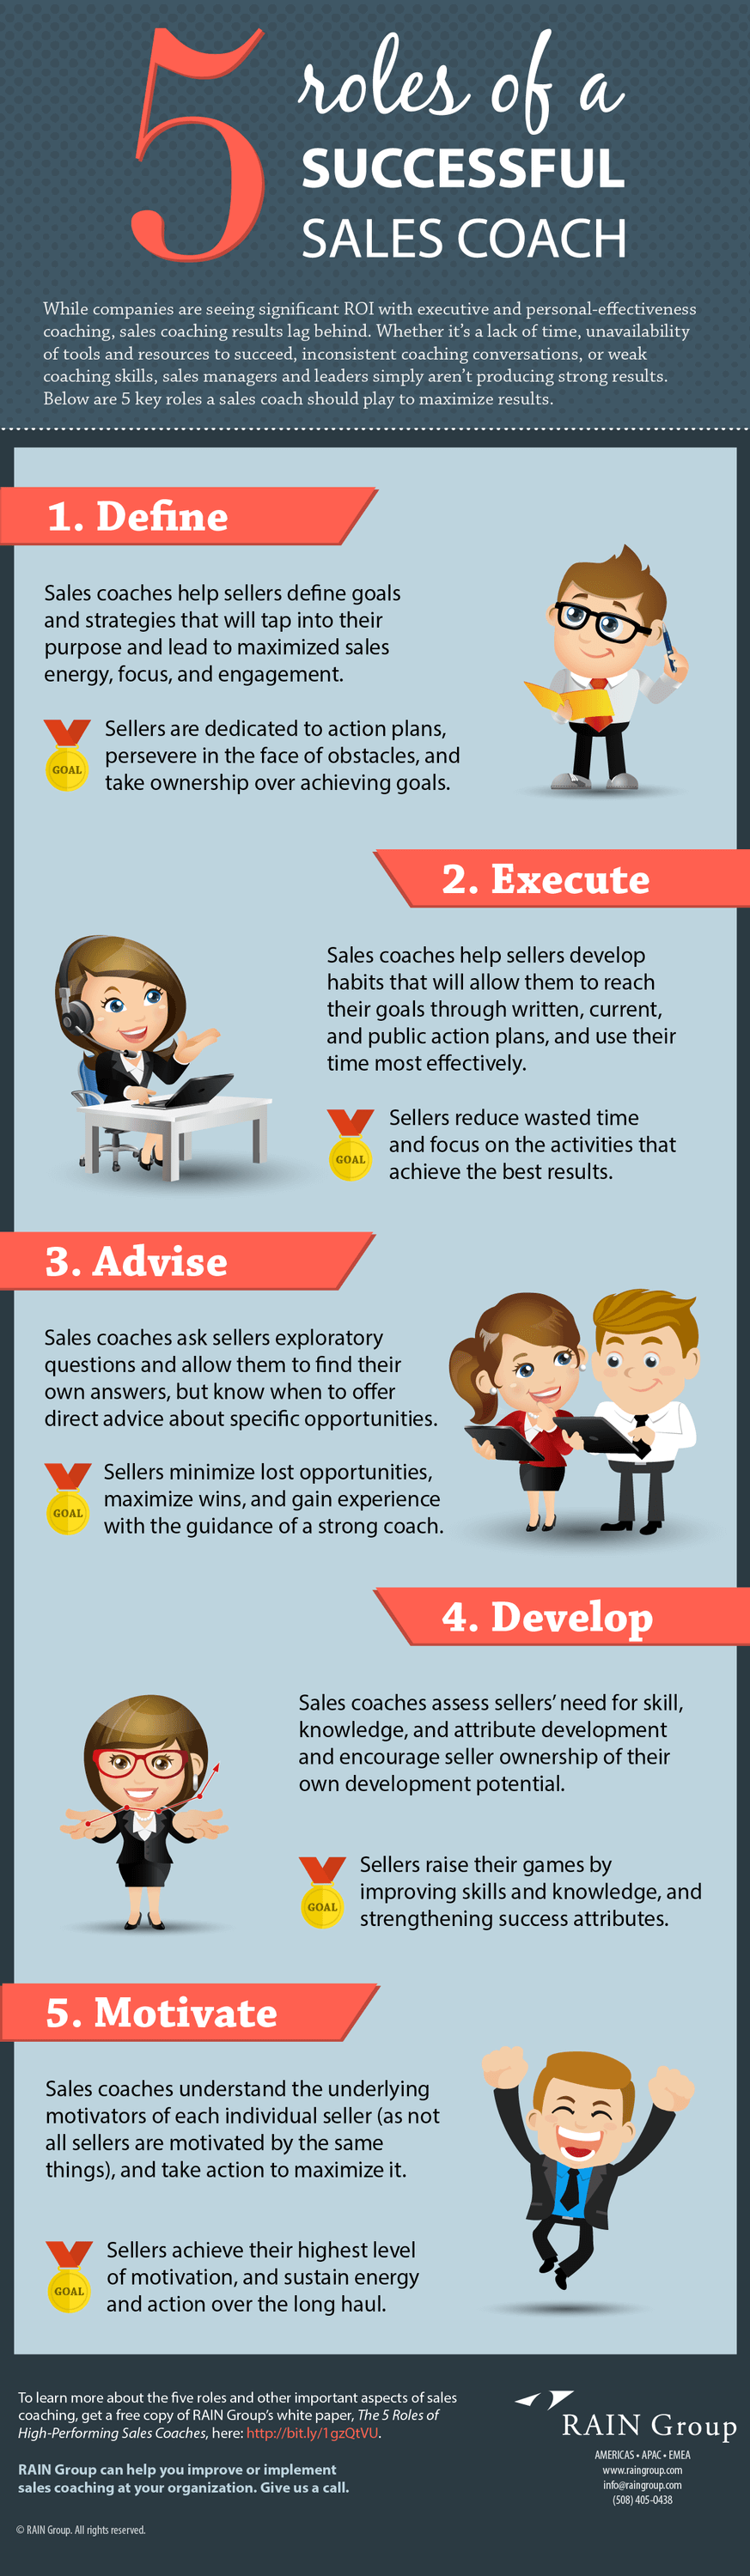 5_roles_of_a_successful_sales_coach.png